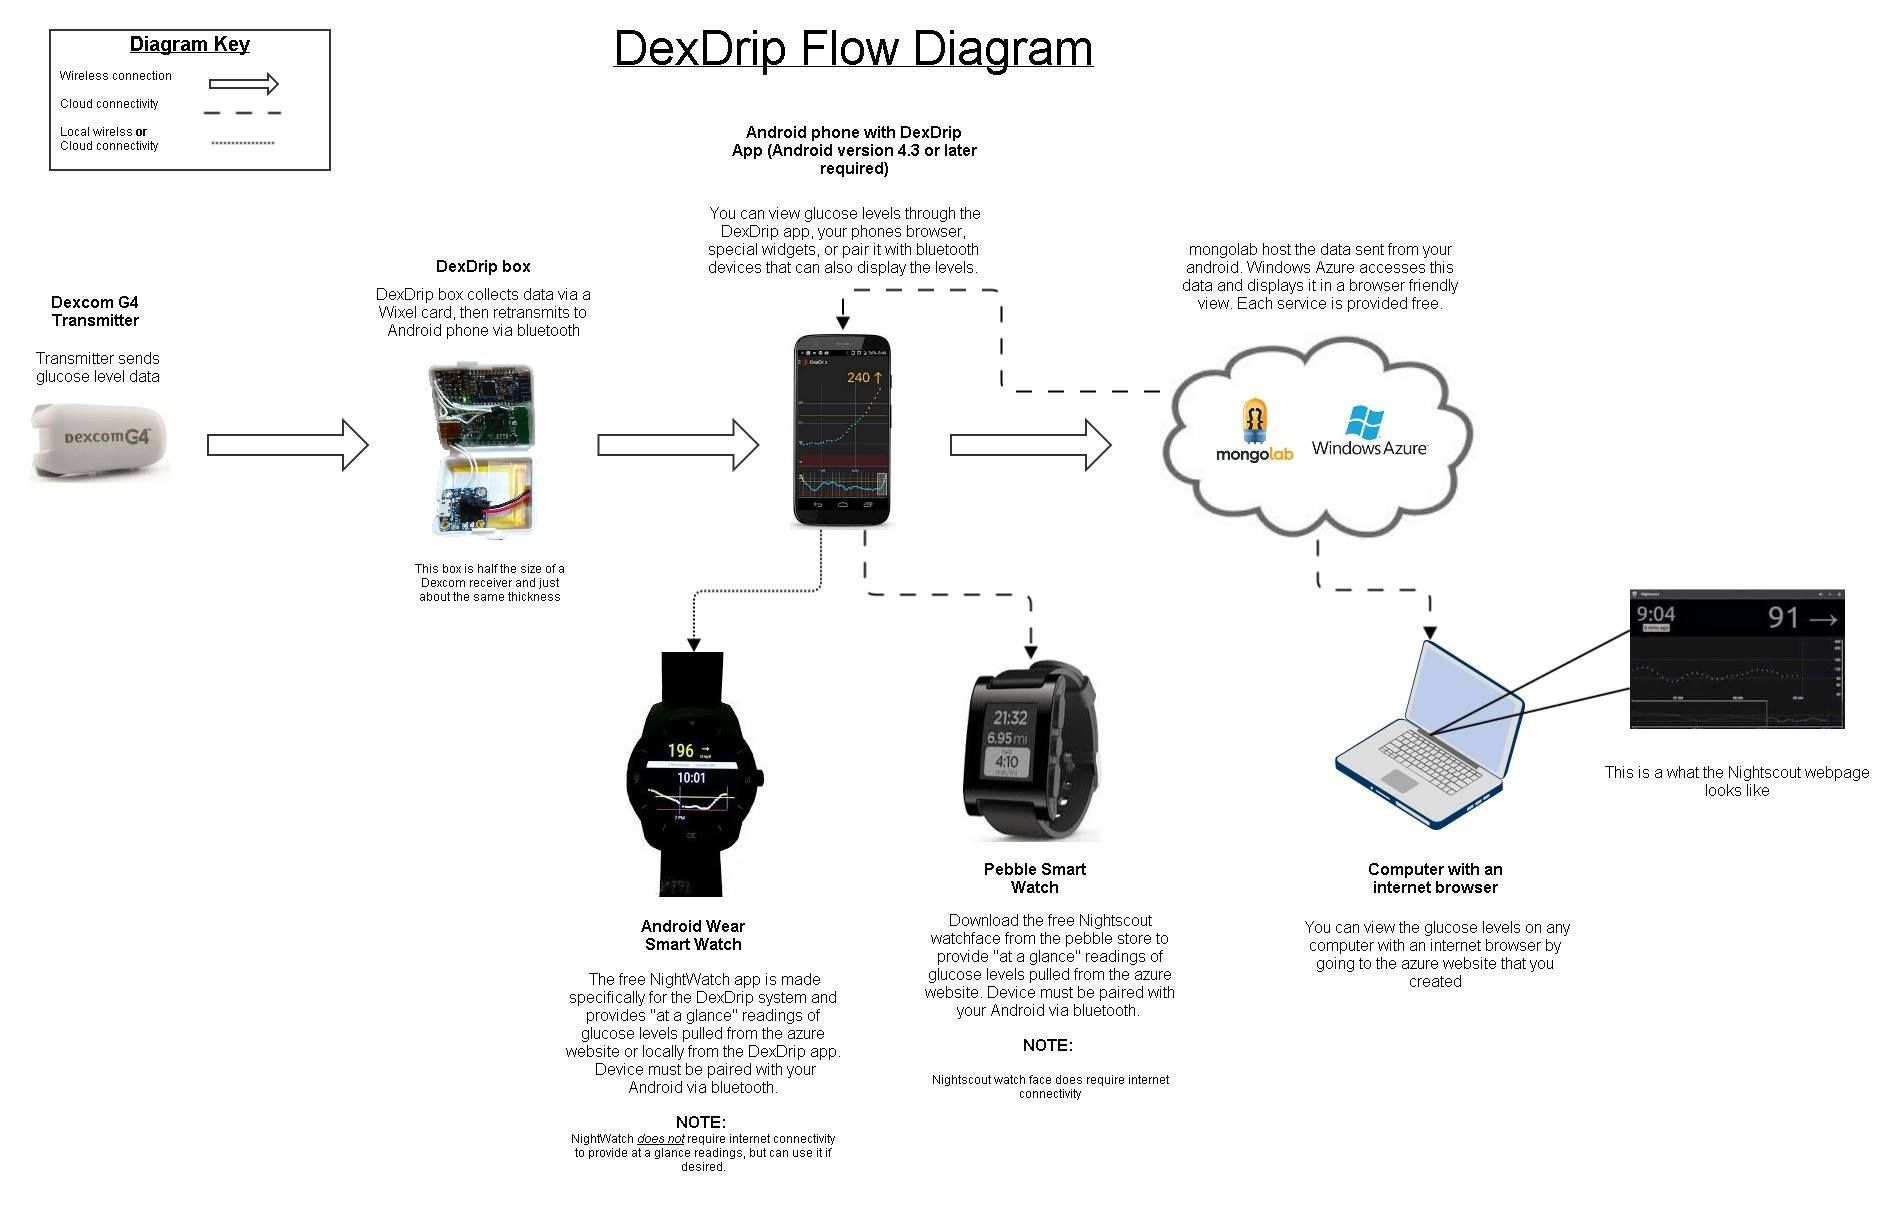 Dexdrip An android application that wirelessly reads the